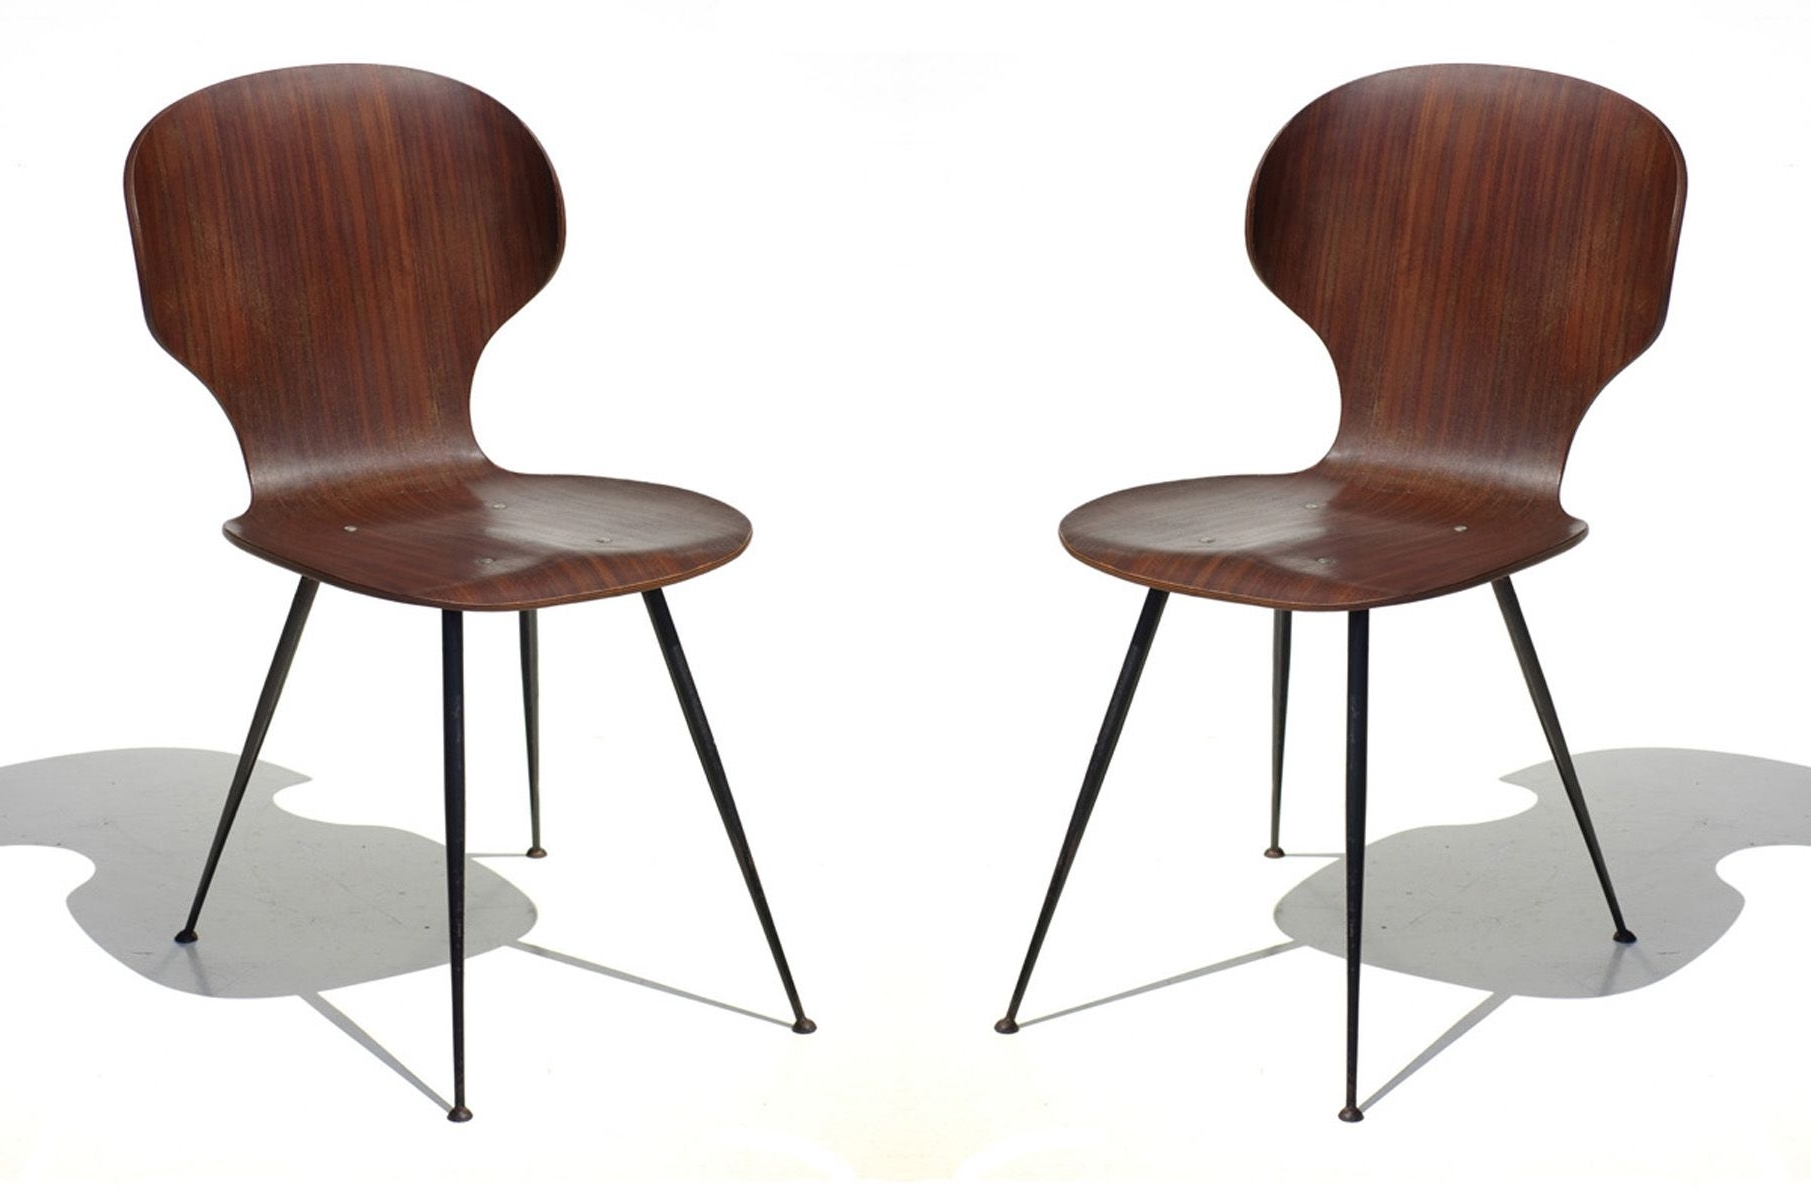 Plywood & Metal Brown Dining Chairs Within Well Known Mid Century Plywood & Metal Dining Chairscarlo Ratti For Lissoni (View 8 of 20)